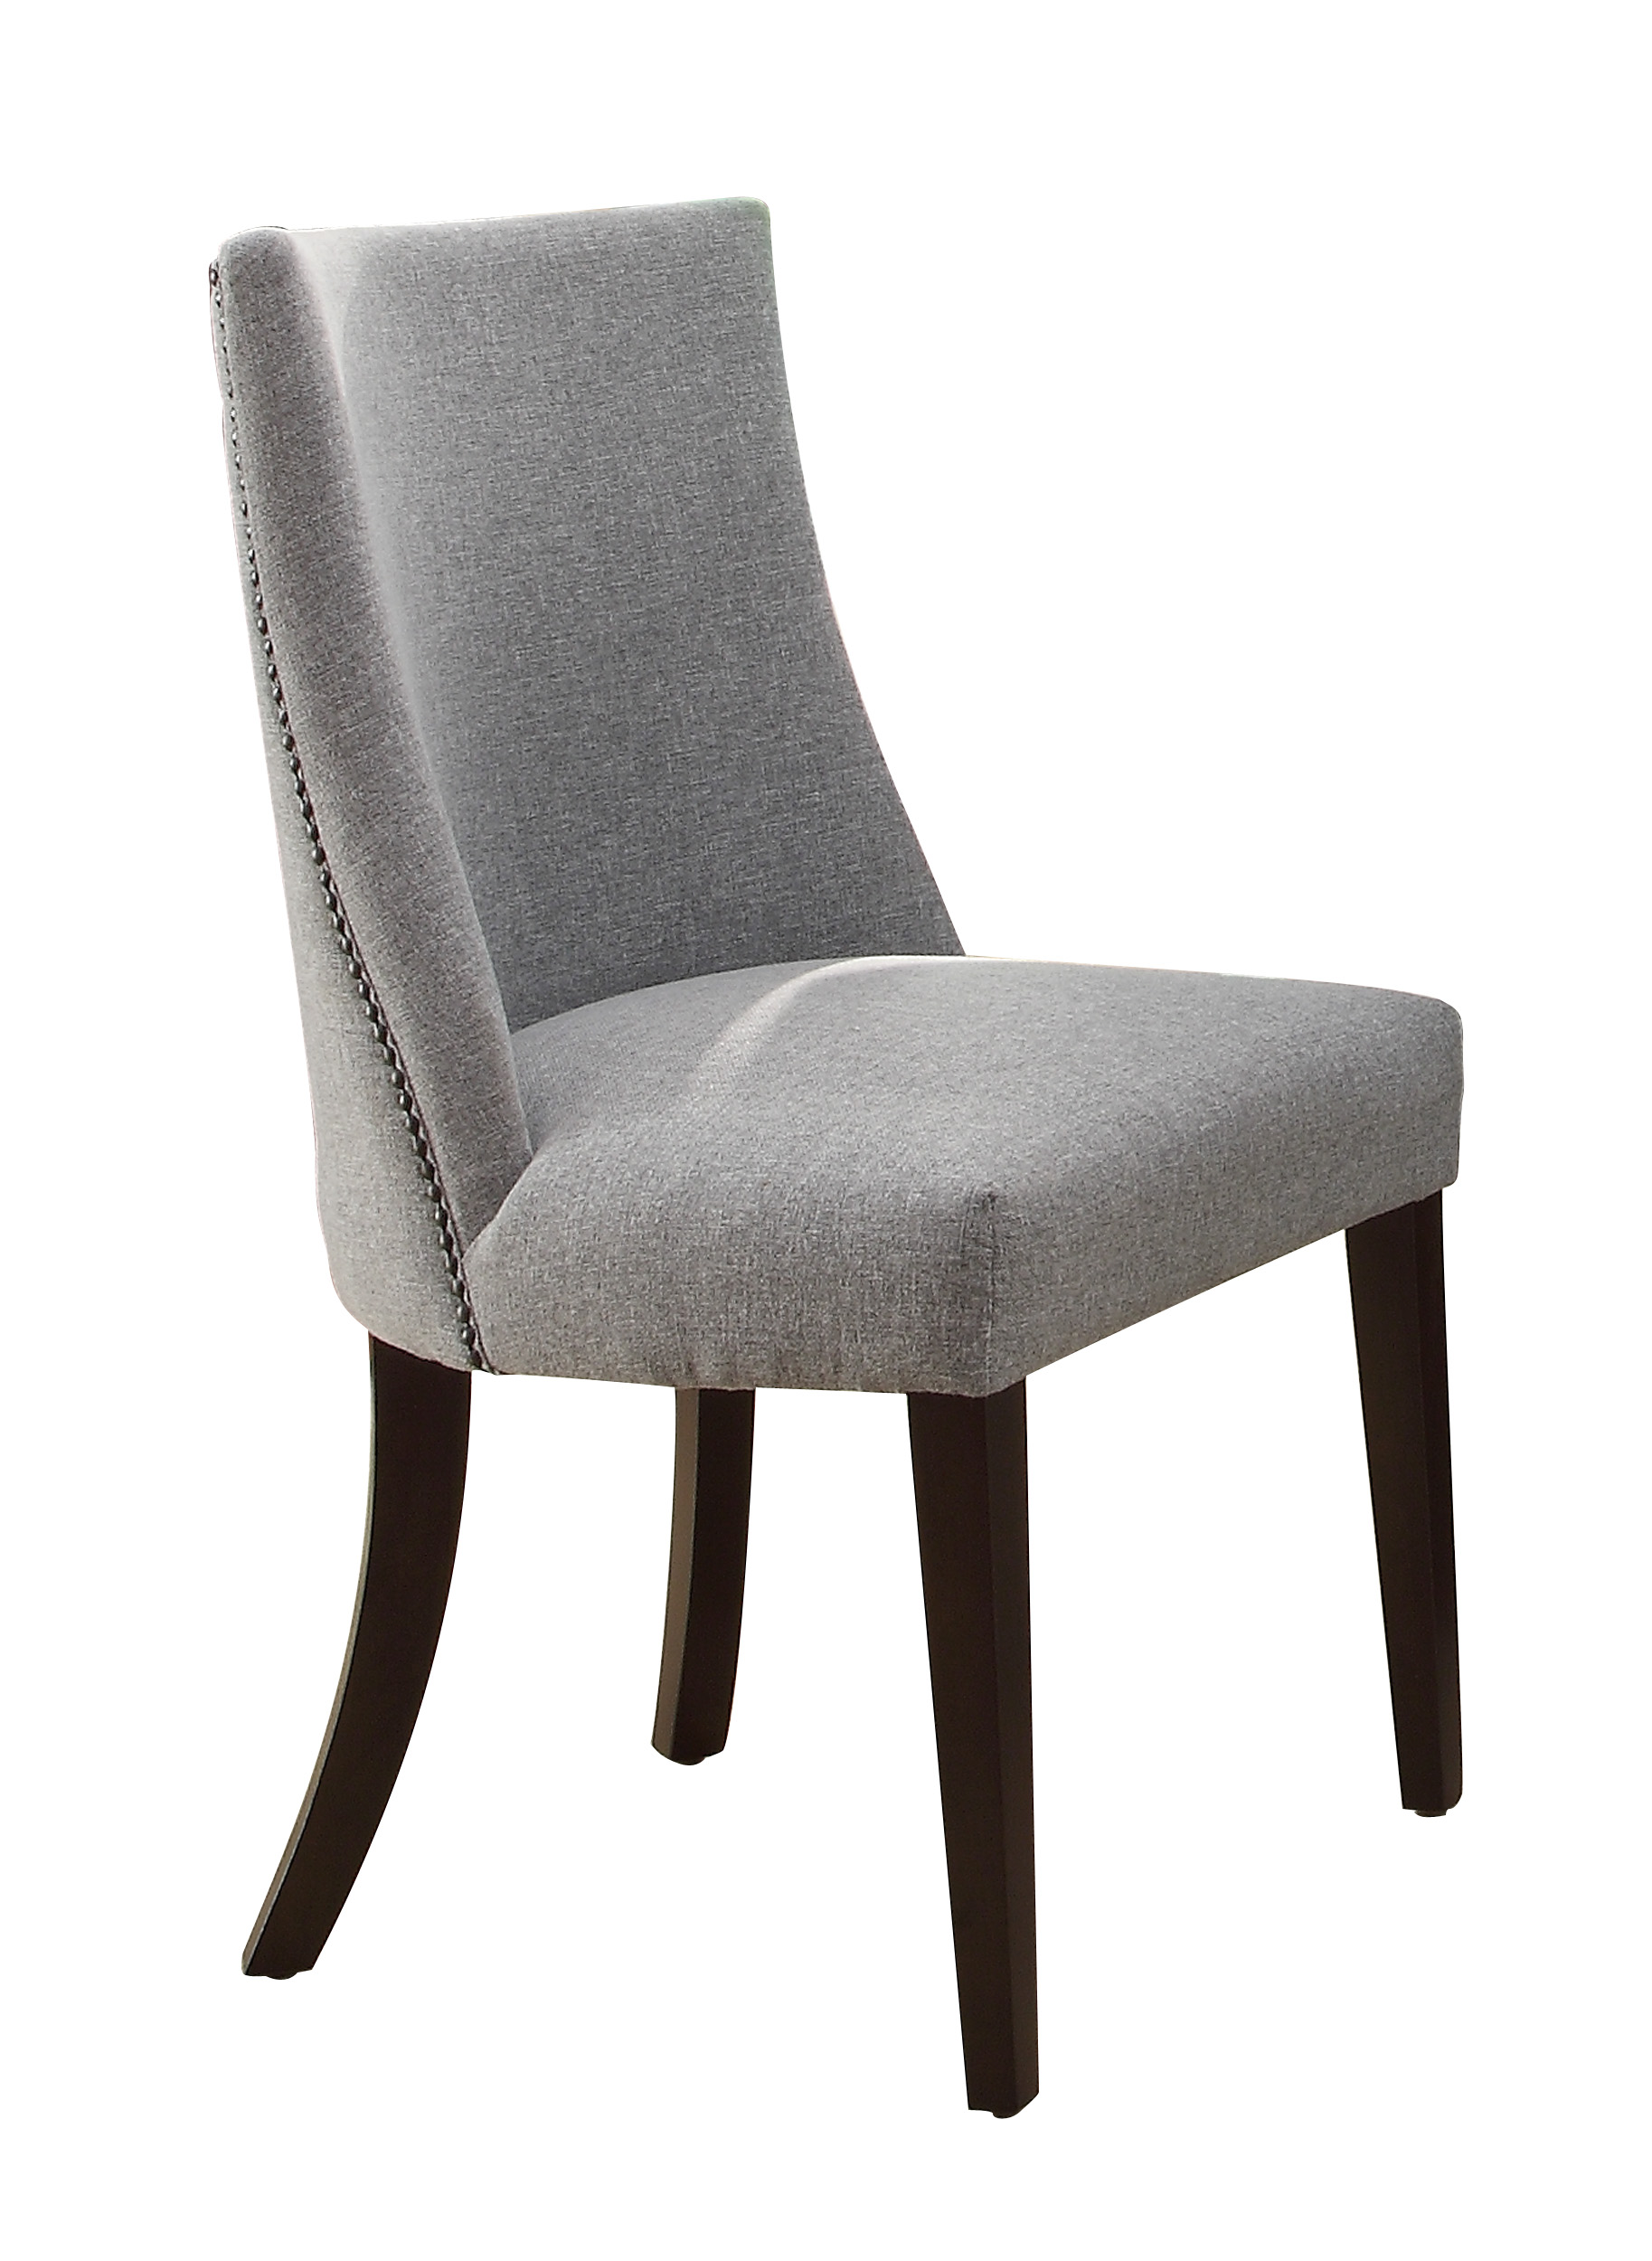 Chicago grey upholstered side dining chair set of 2 for Upholstered dining chairs